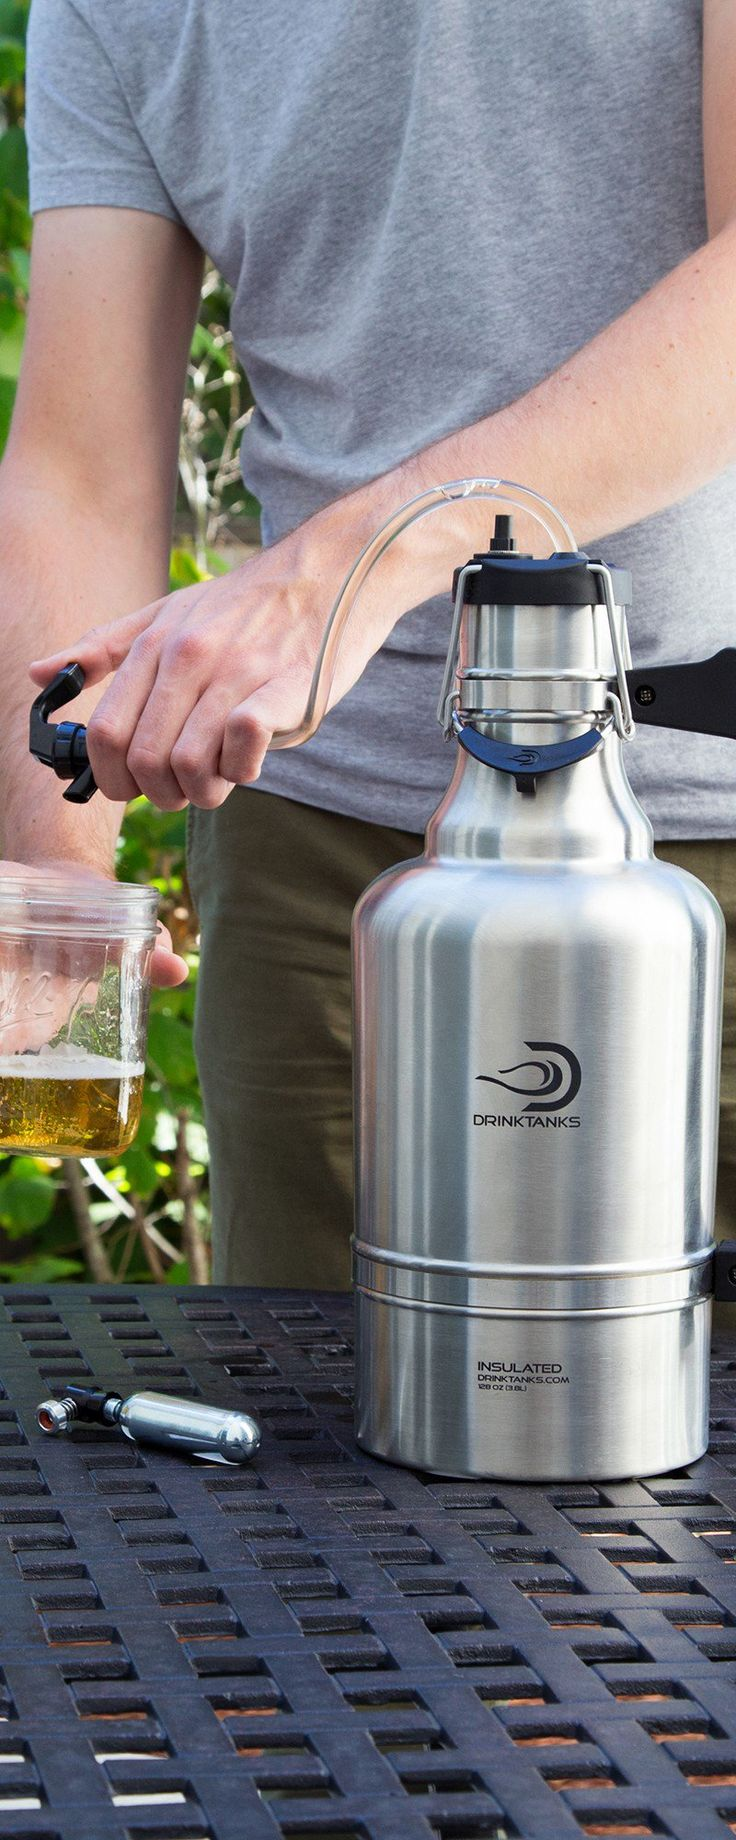 These black and silver personal growlers discovered by The Grommet, preserve carbonation and premium craft brew taste far longer than any screw cap.